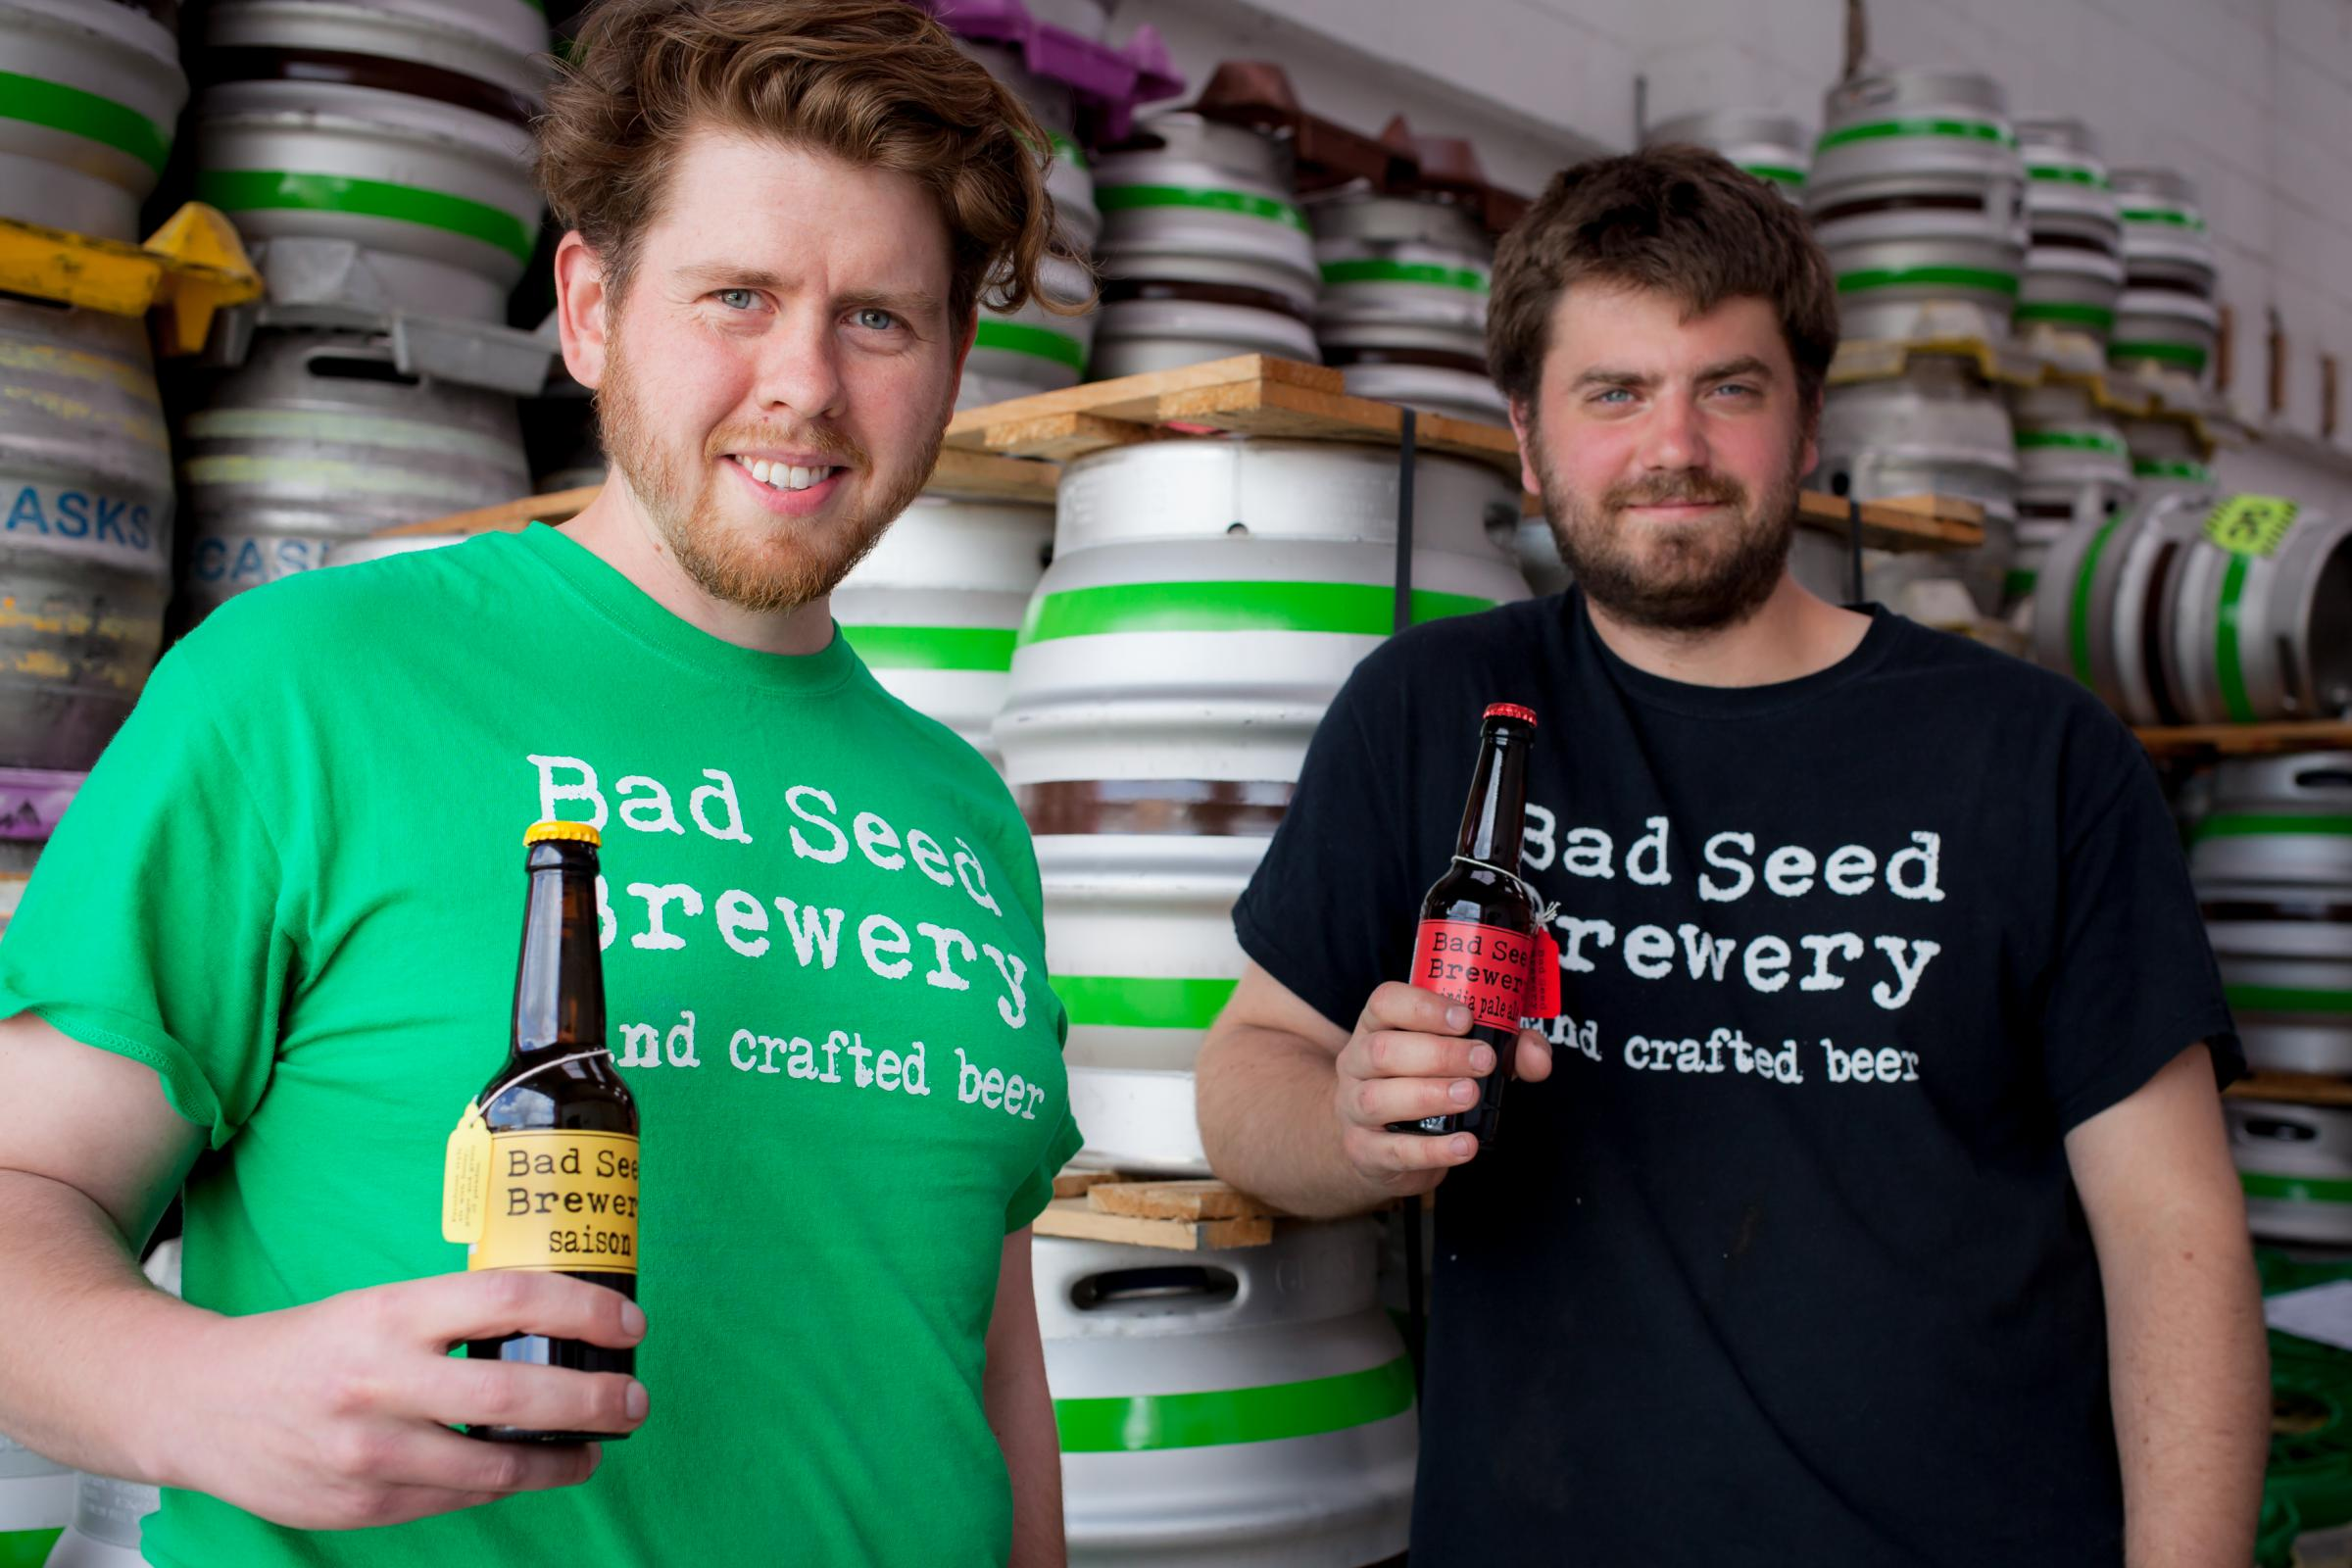 Chris Waplington and James Broad, of Bad Seed Brewery, which is trebling its capacity